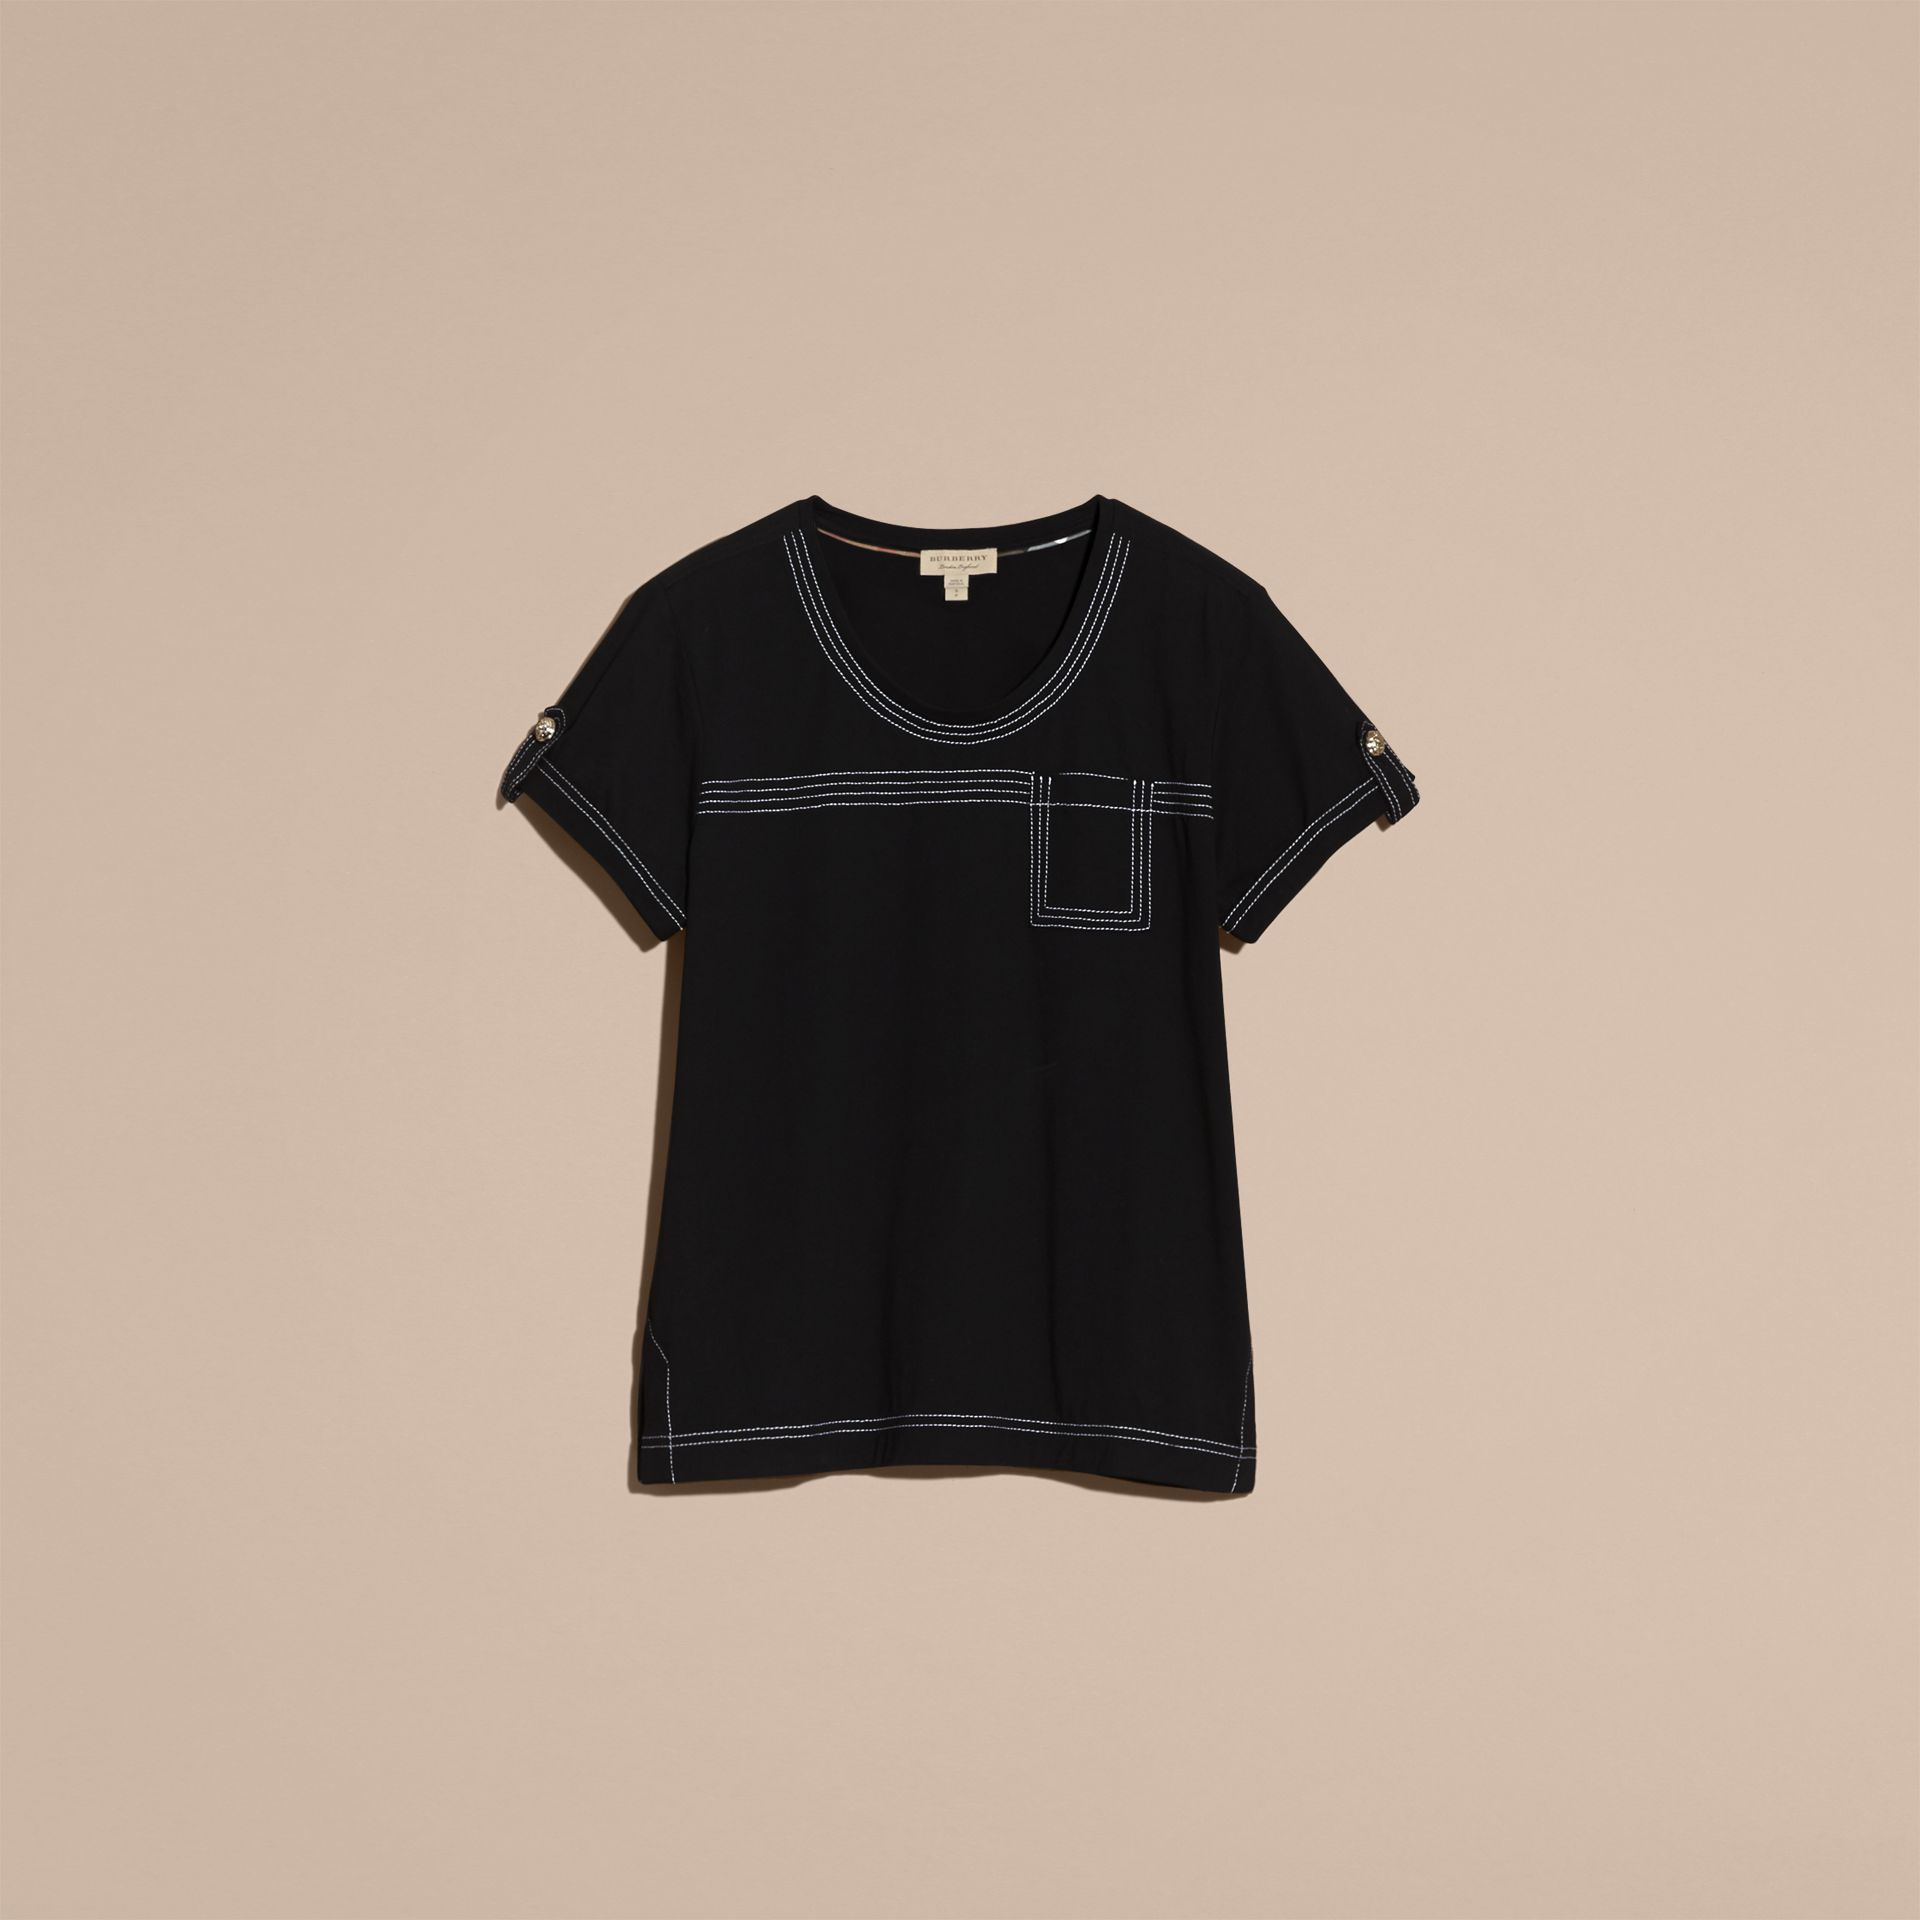 Black Topstitch Detail Cotton T-shirt Black - gallery image 4